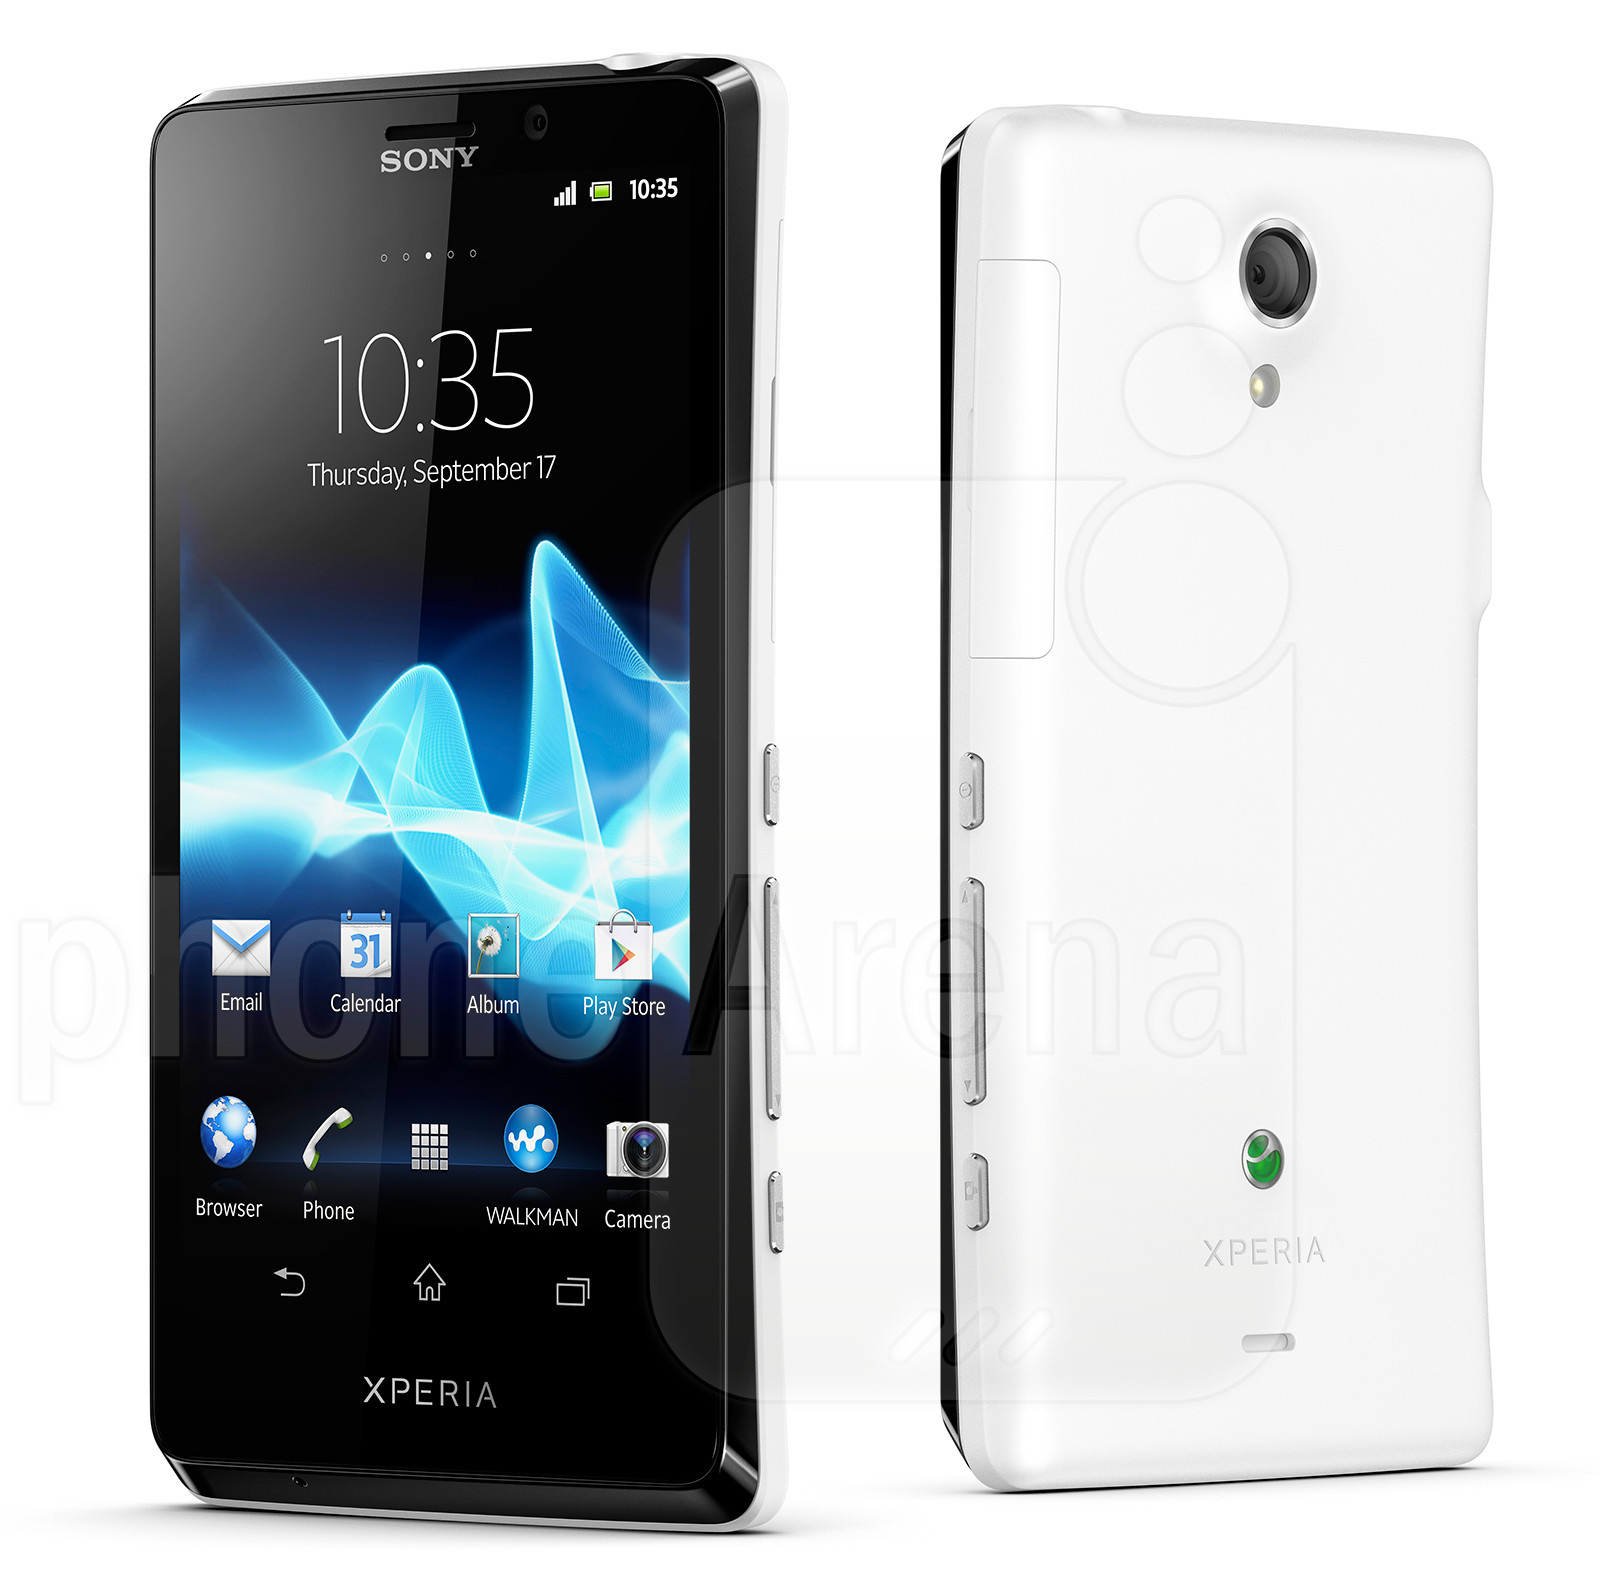 Xperia T Jelly Bean Update – AndroidNectar